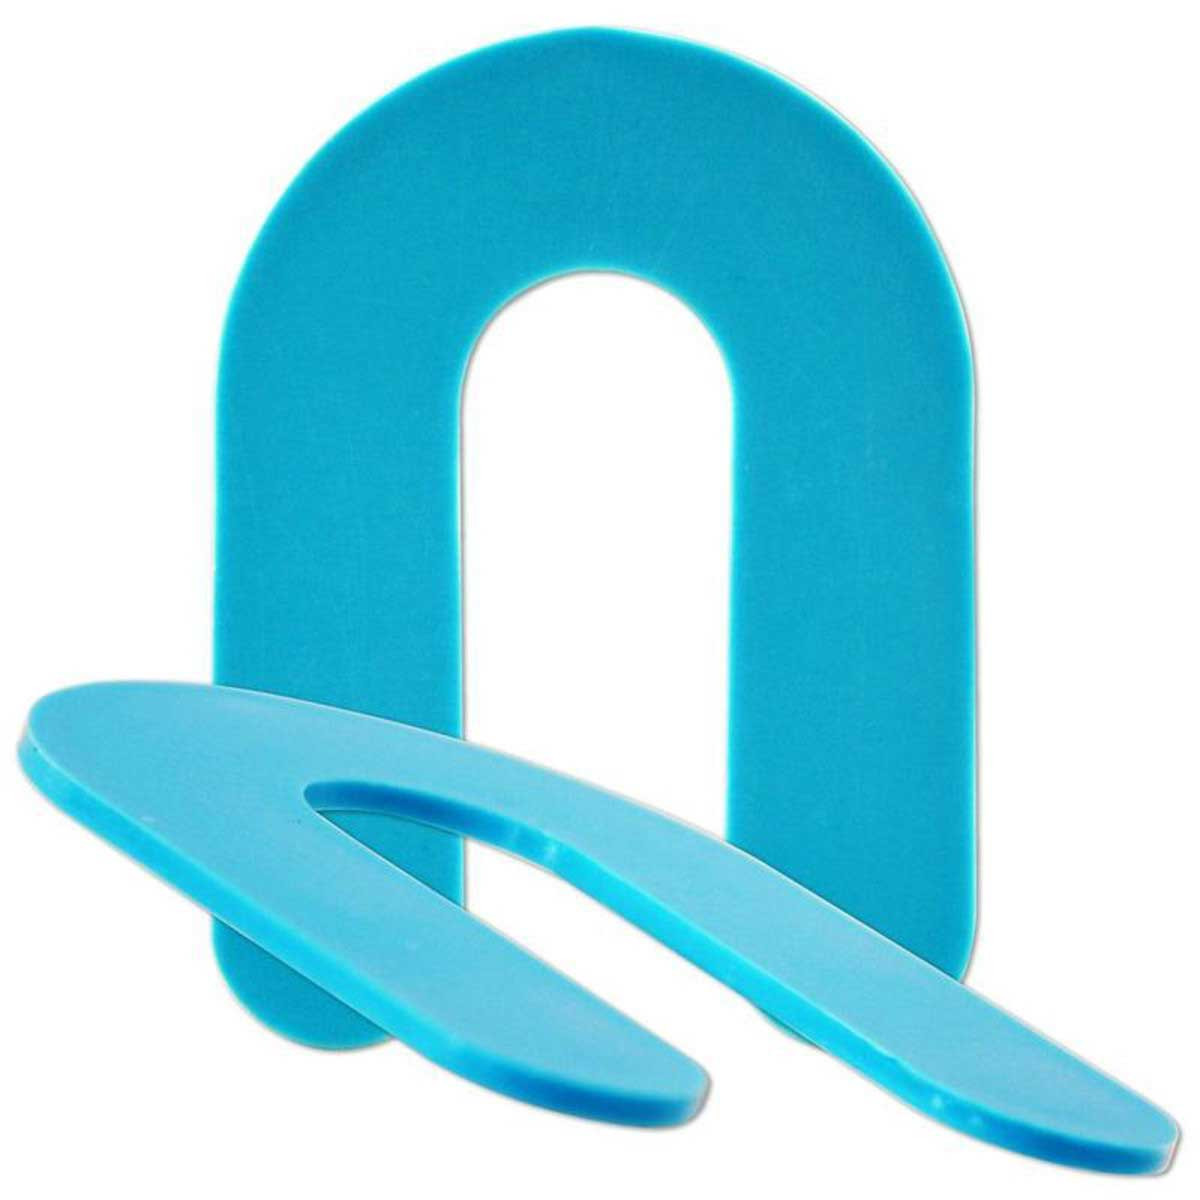 CDSHIM116 1/16th Blue Plastic Horseshoe Shims